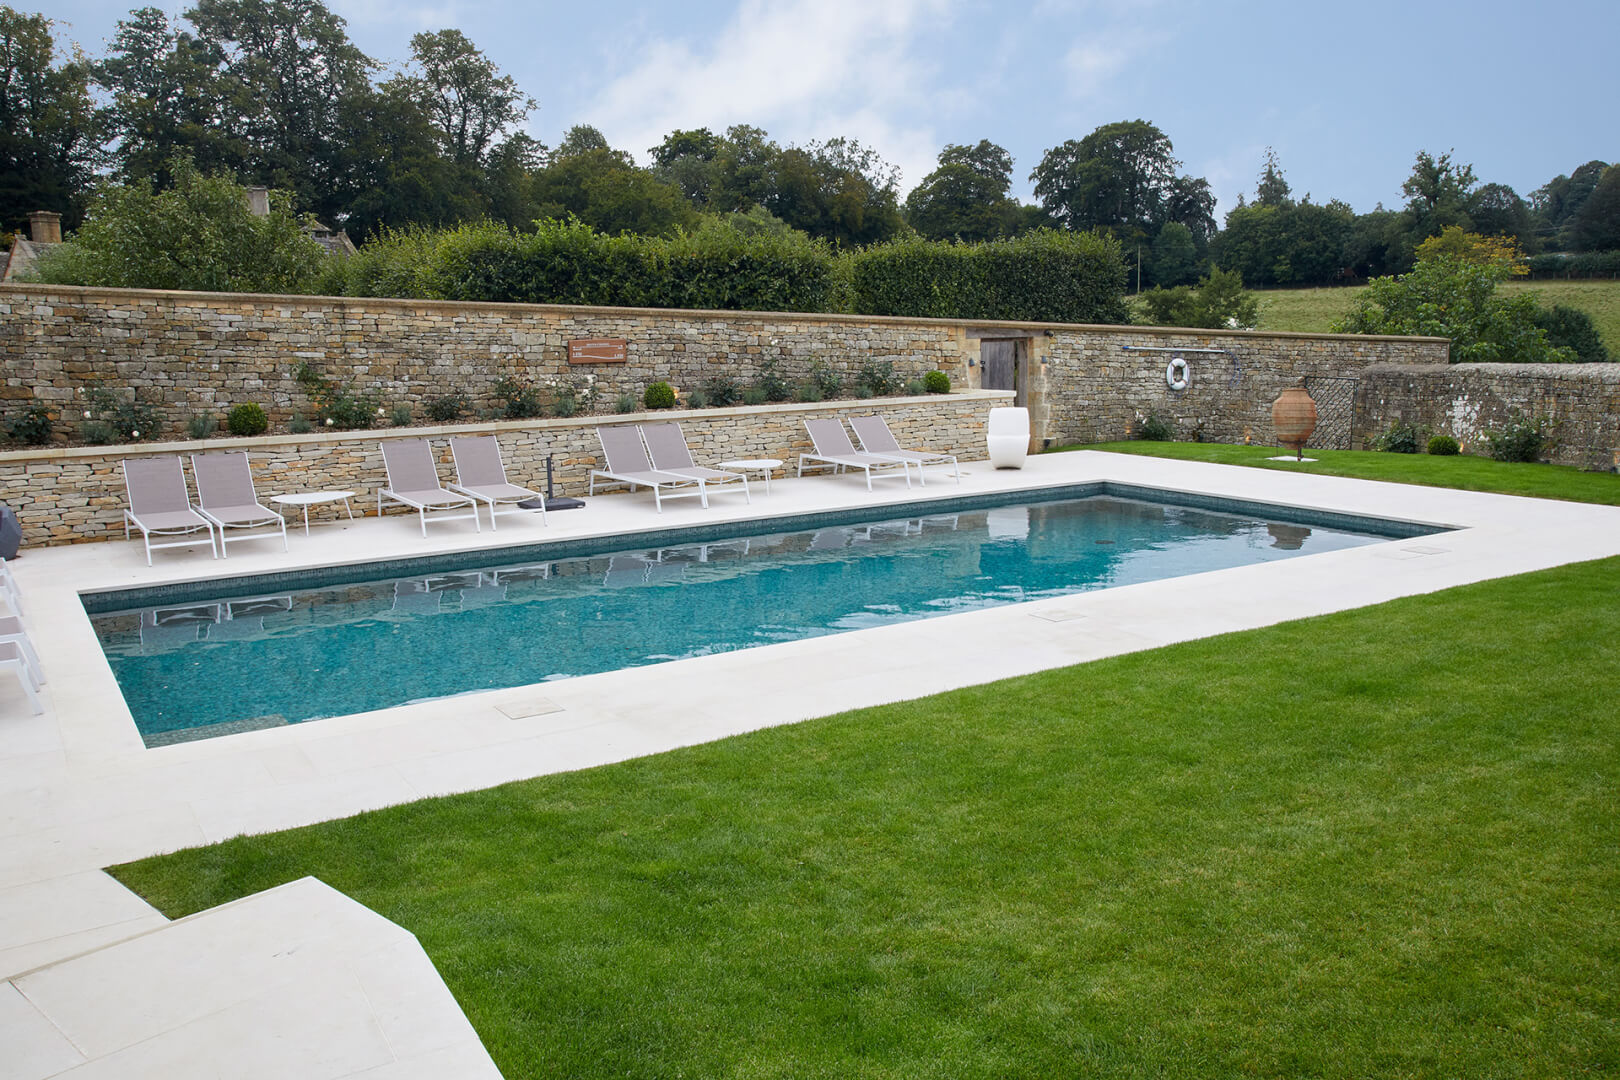 Luxury Residential and Commercial Outdoor Swimming Pool